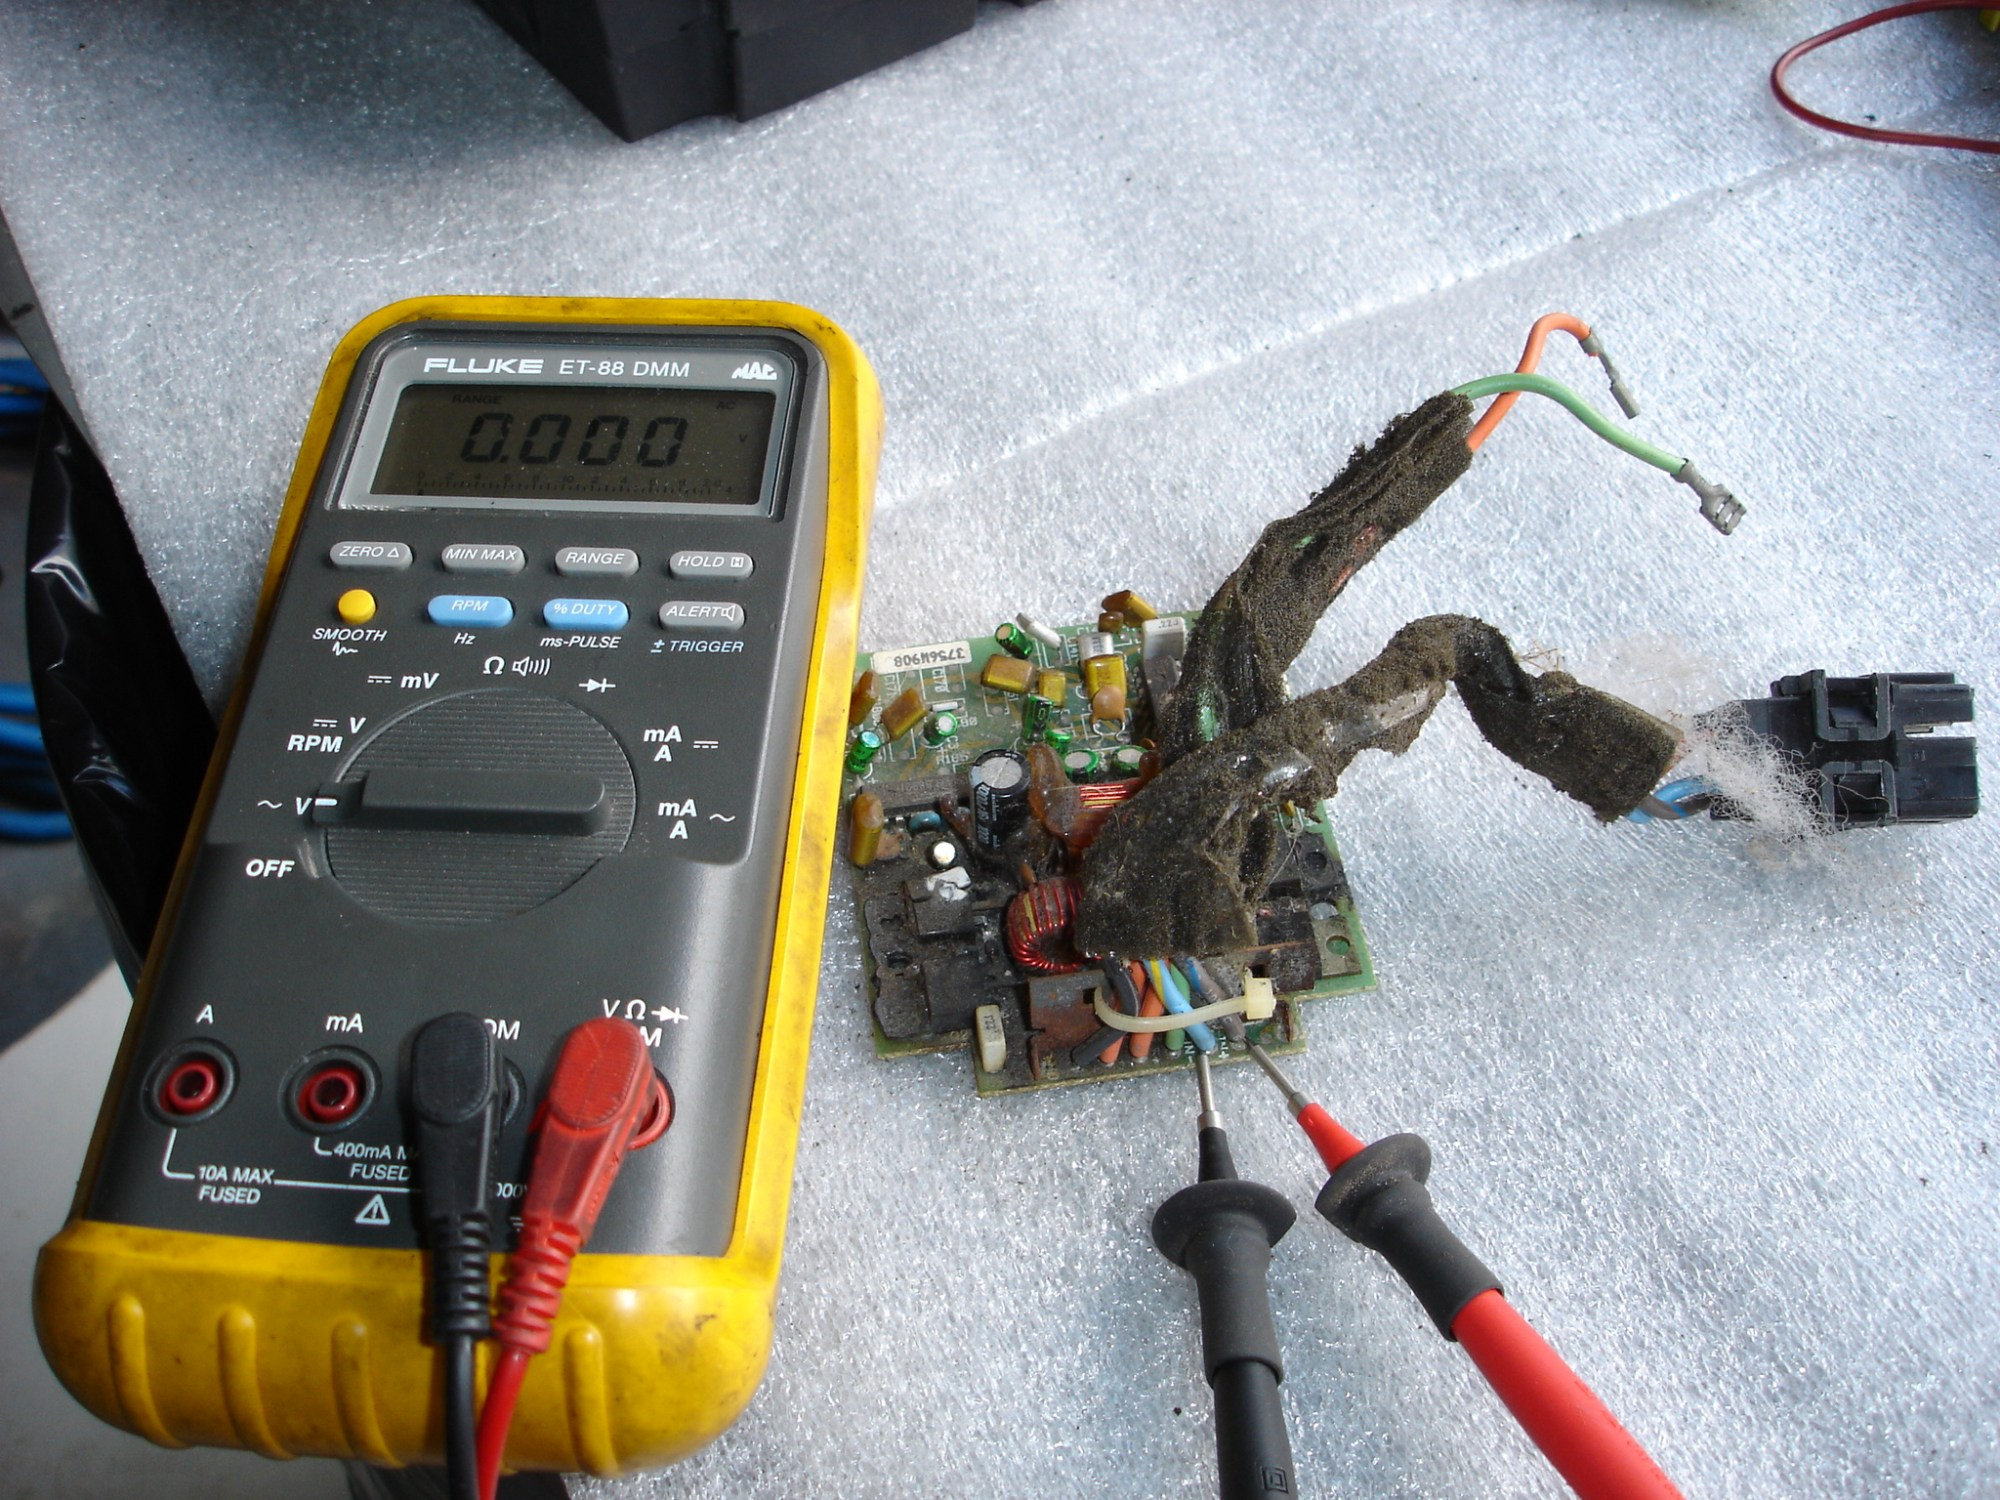 hight resolution of this is the setup required to check the amplifier for proper signal from the radio connect a voltmeter set on low ac voltage to terminals c and d with the